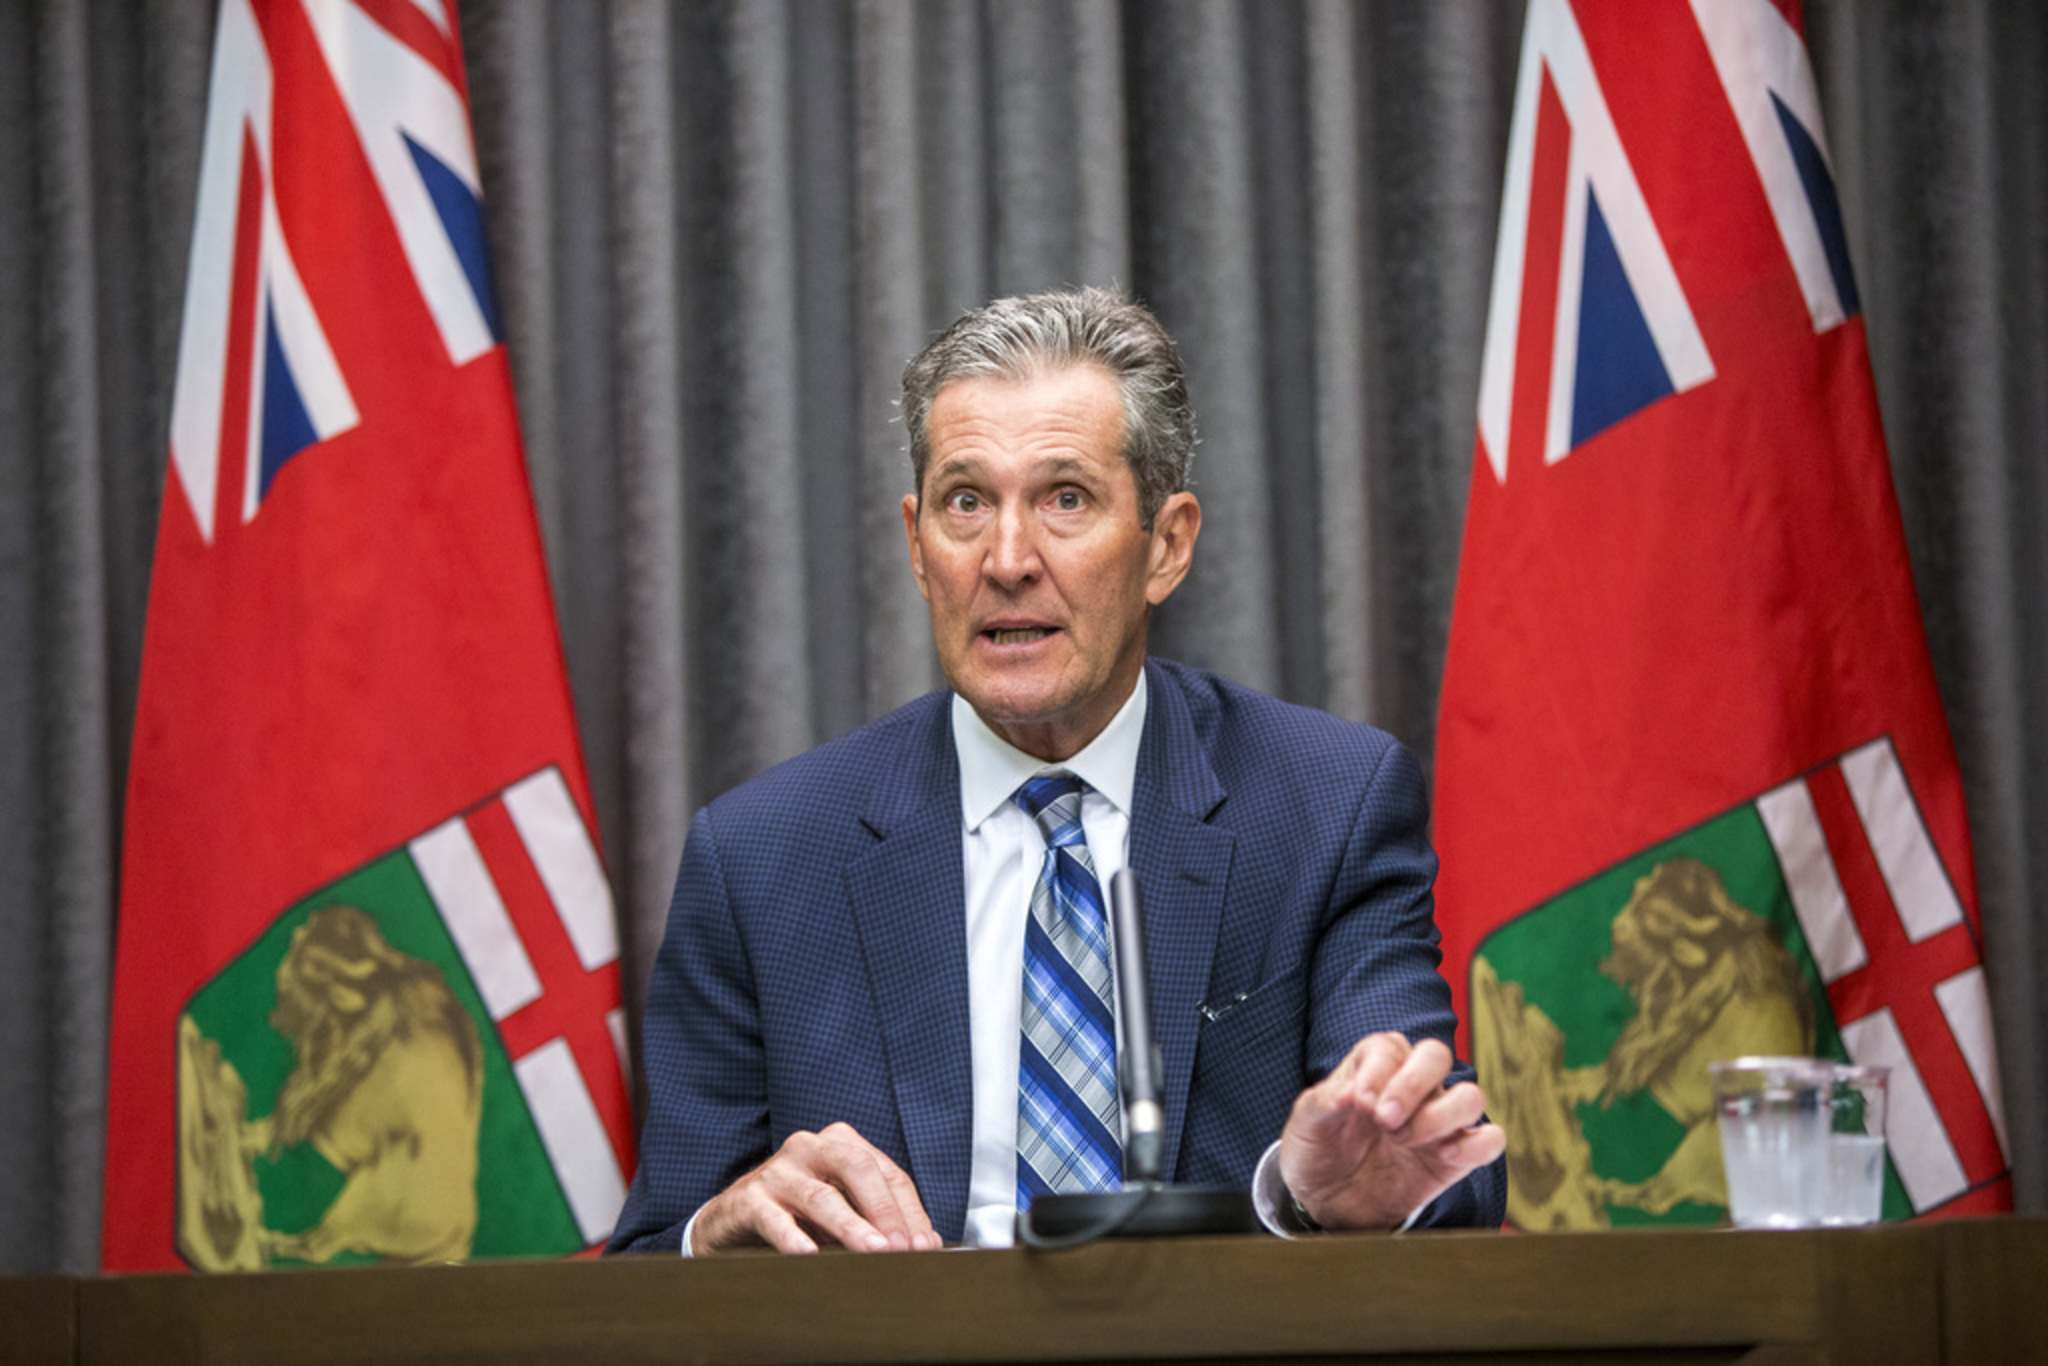 MIKAELA MACKENZIE / WINNIPEG FREE PRESS</p><p>Premier Brian Pallister has made clear his government's intentions of revamping higher education to better prepare students for jobs since he was re-elected in September.</p>